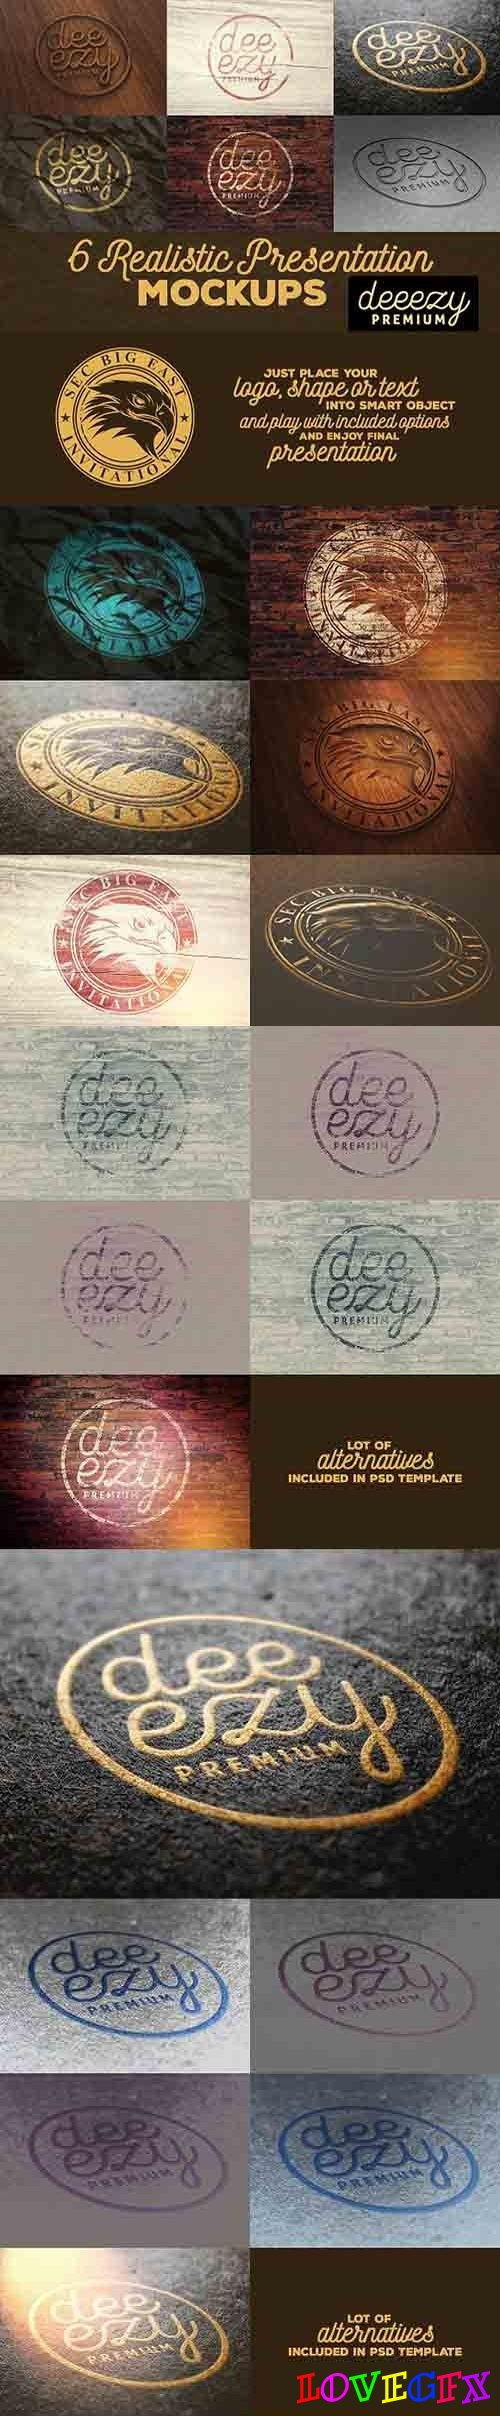 6 Realistic Logo or Text Mock-ups 1917280